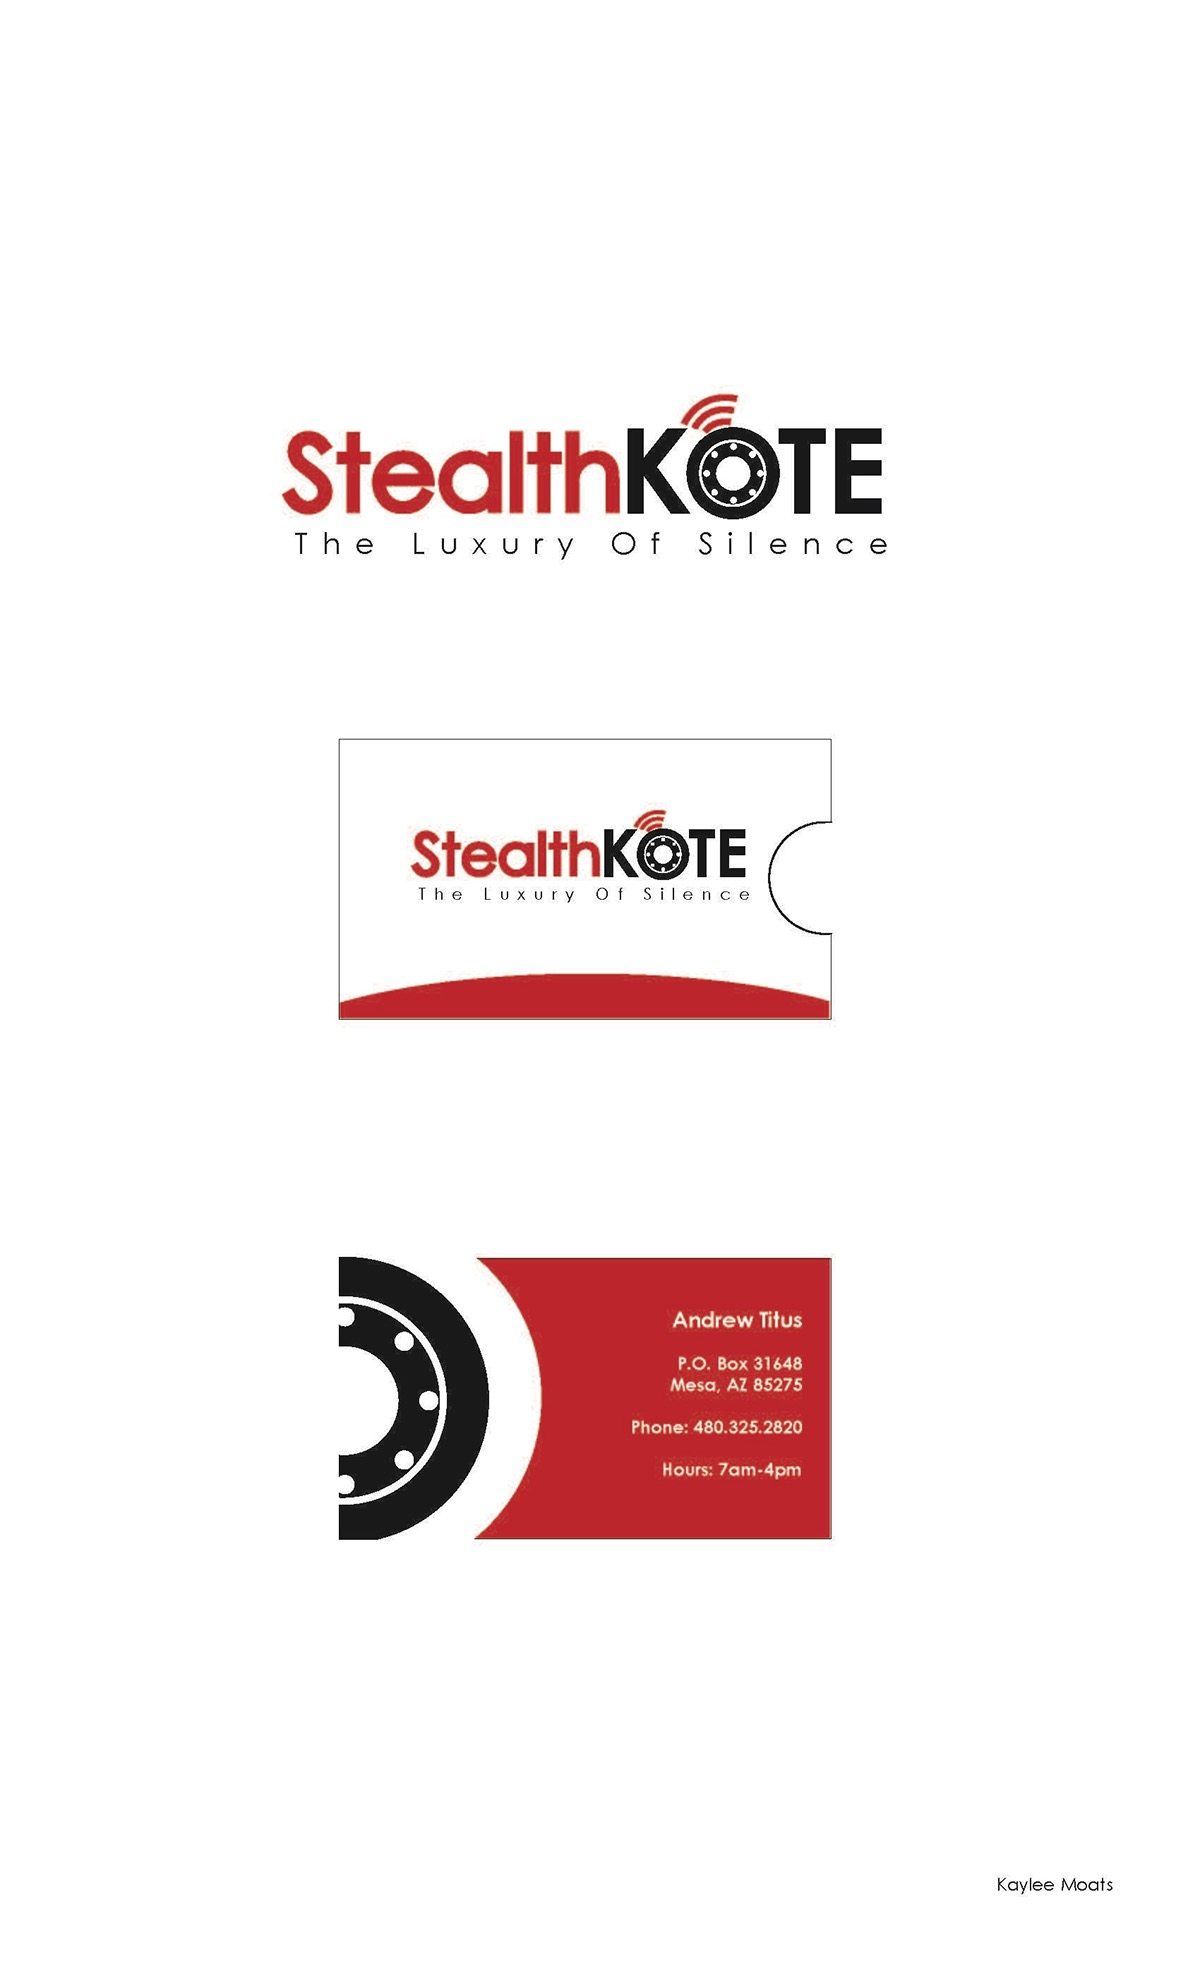 Stealth Kote Logo & Business Card Concepts on Behance